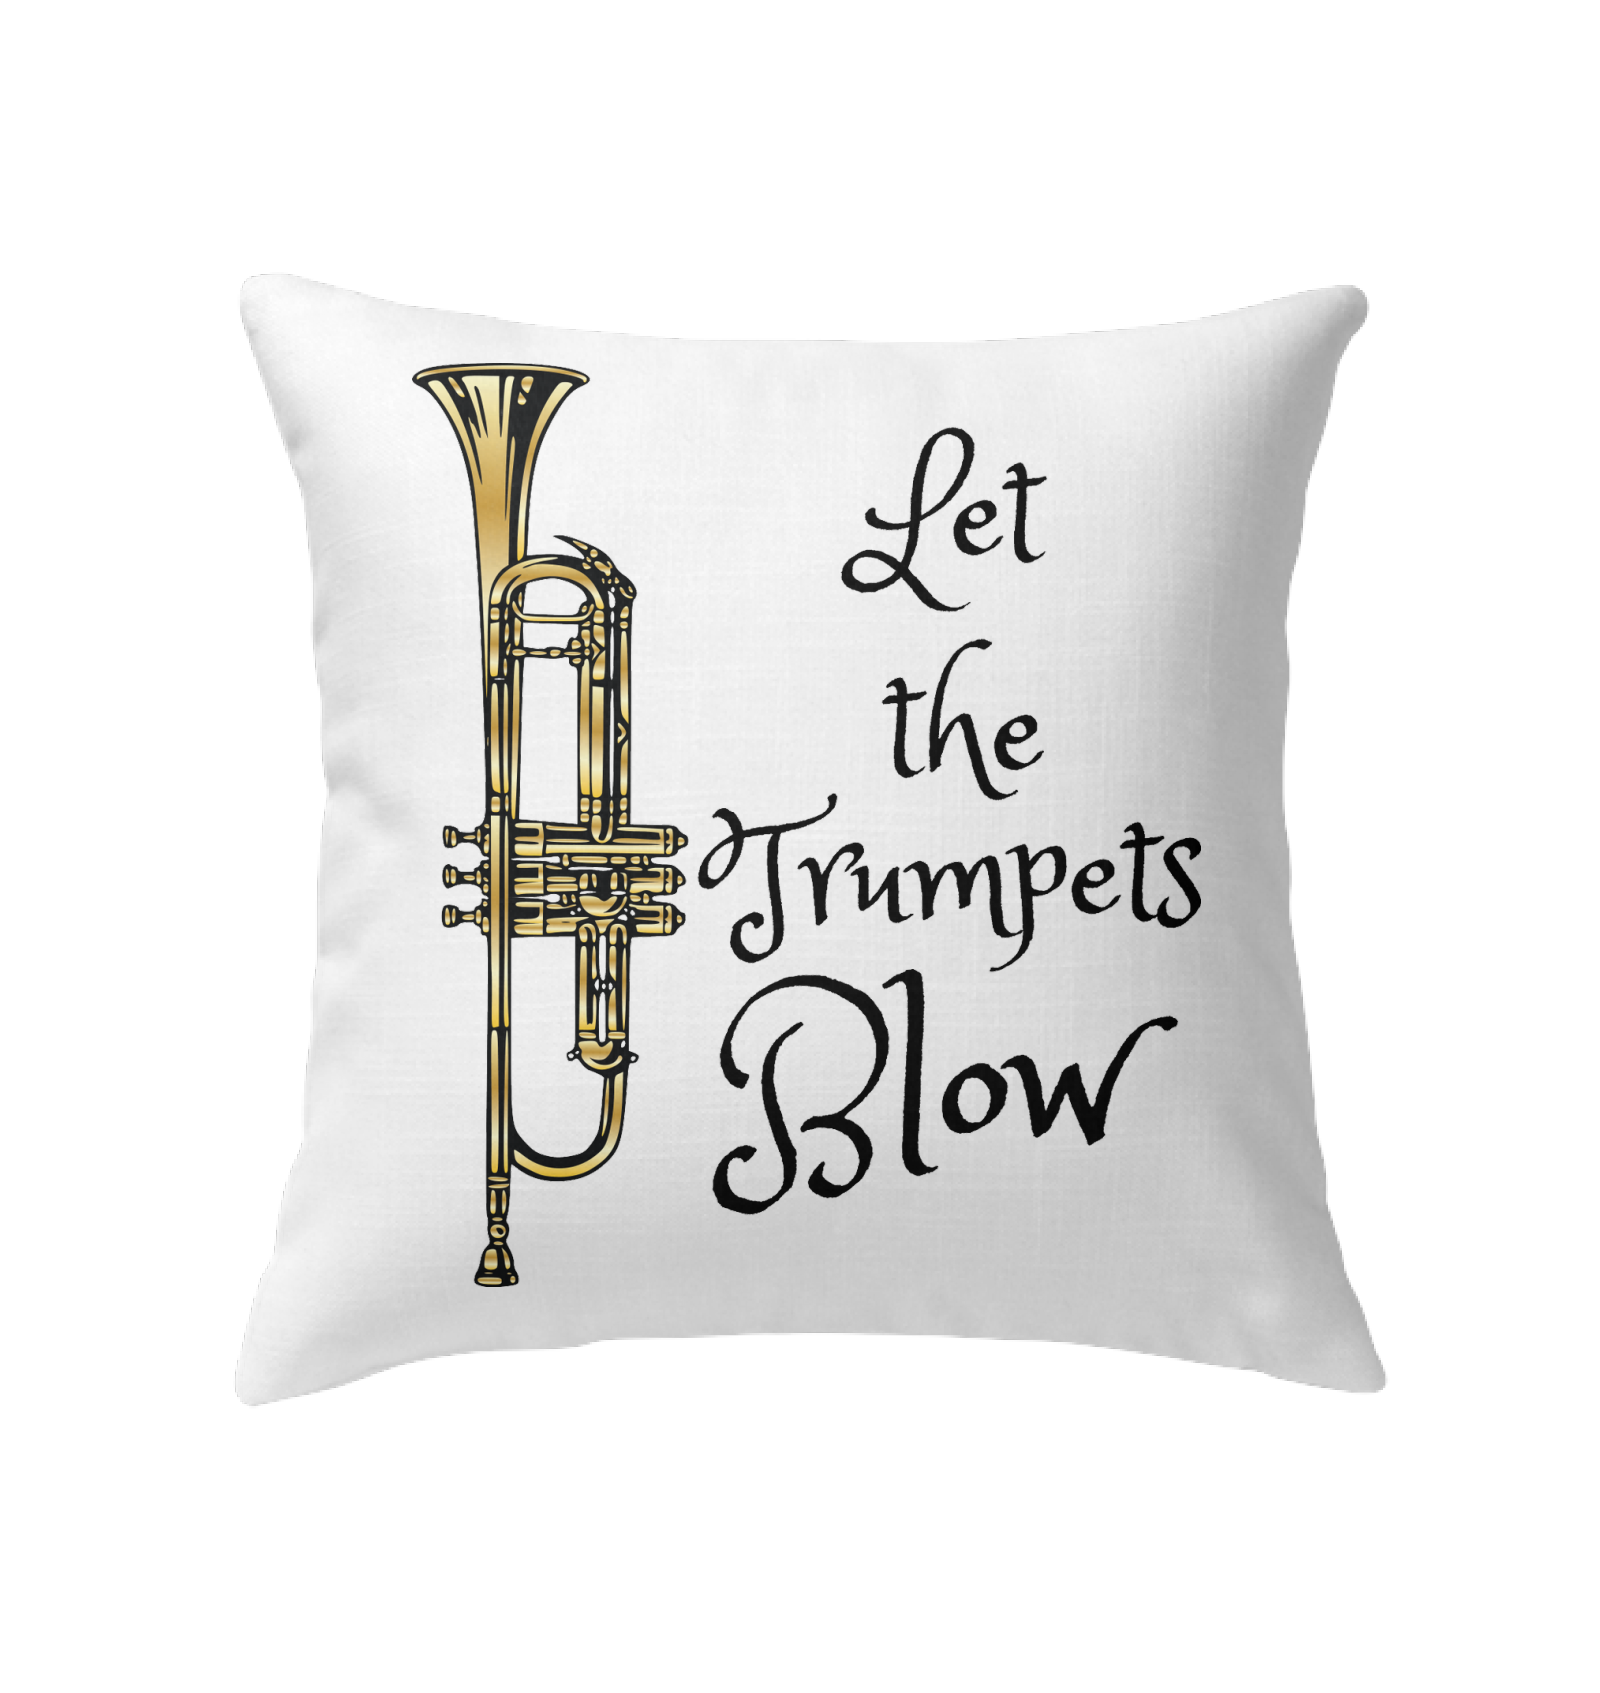 Let the Trumpets Blow - Indoor Pillow